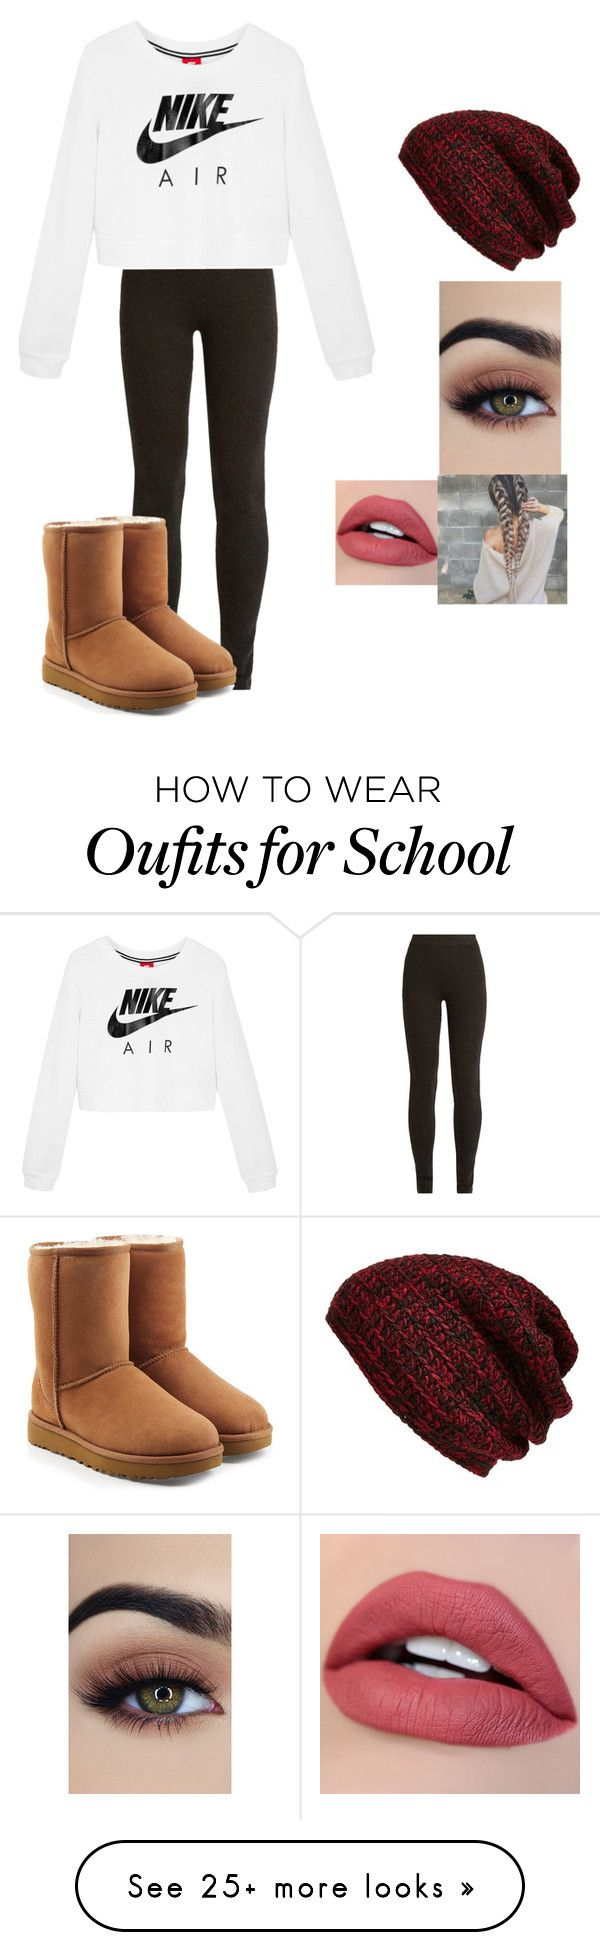 """School sucks."" by km213009 on Polyvore featuring Ryan Roche, NIKE, UGG and King & Fifth Supply Co."